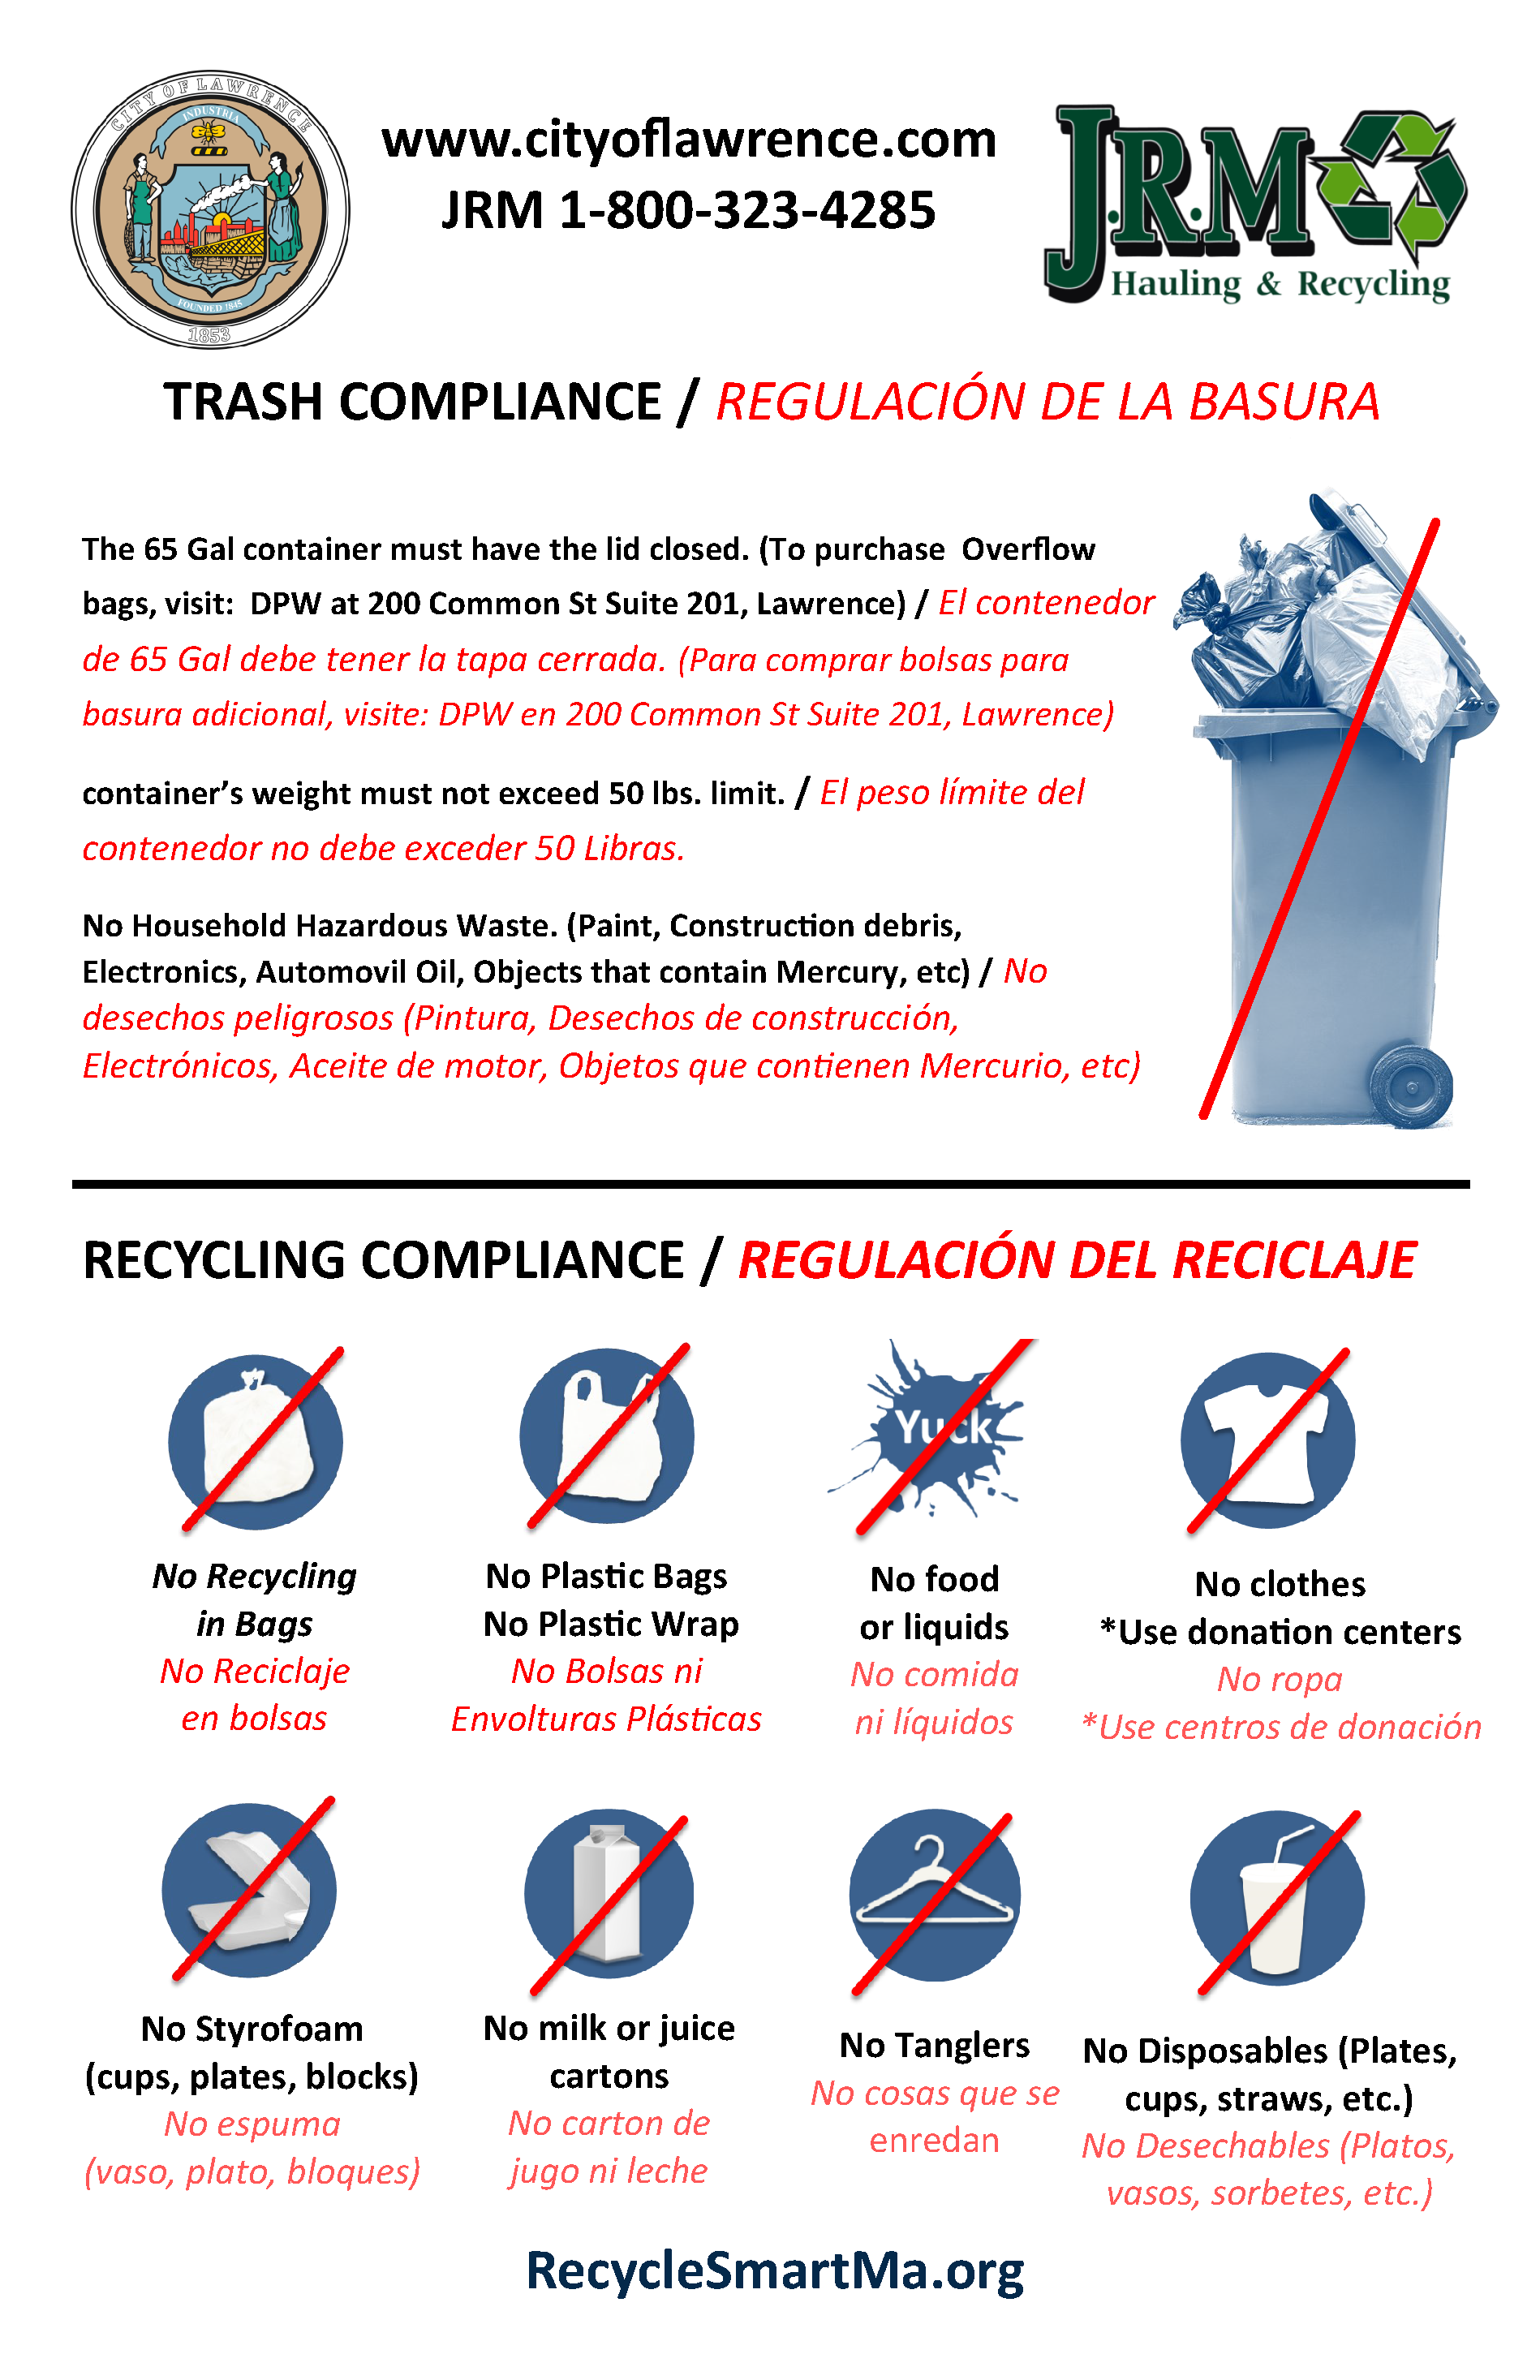 Trash and Recycling Compliance - Regulacion de Basura y Reciclaje